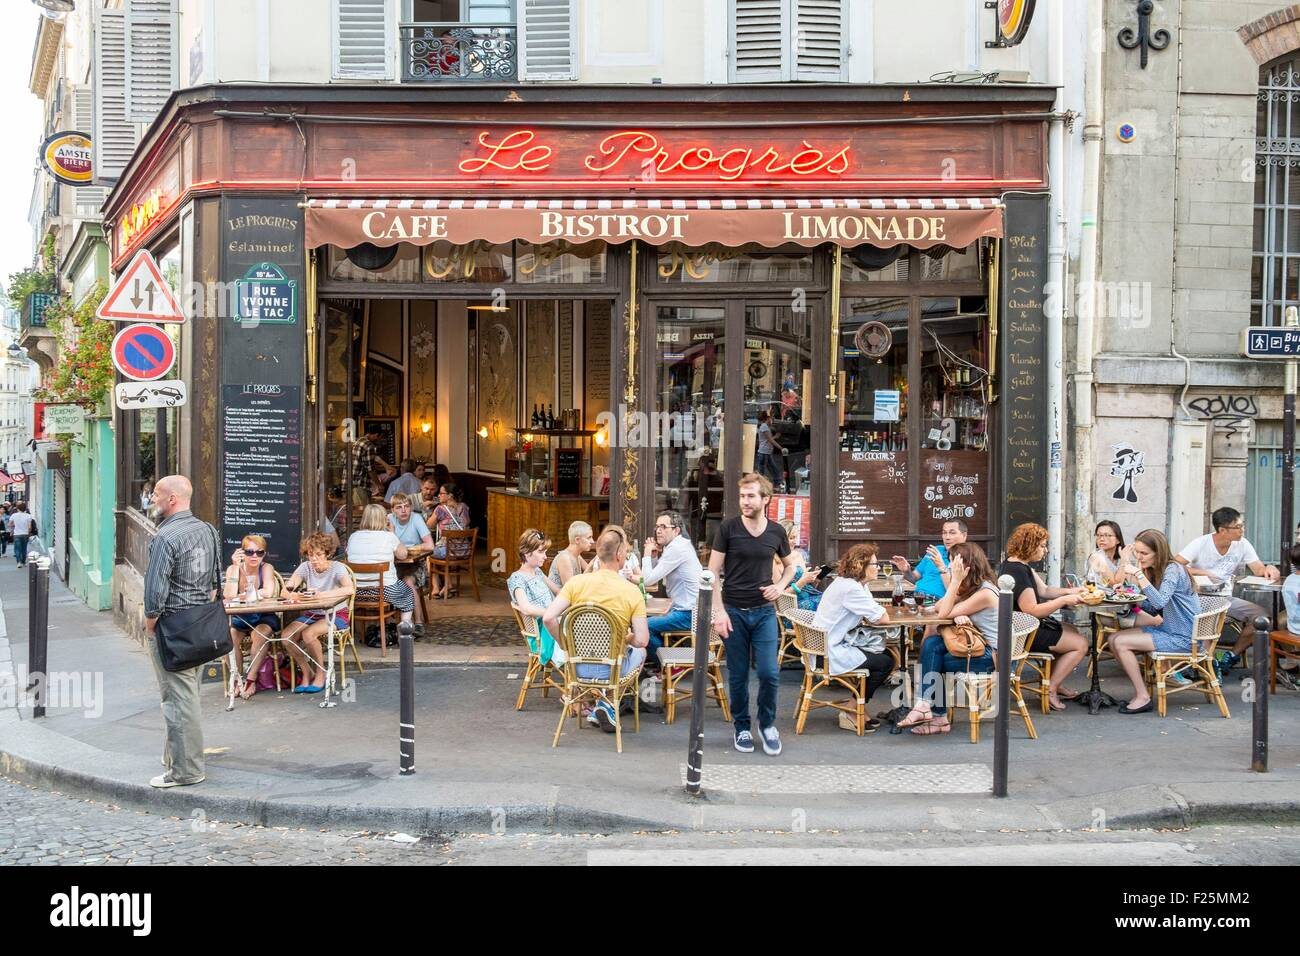 France paris montmartre district the cafe le progres for Le miroir restaurant montmartre